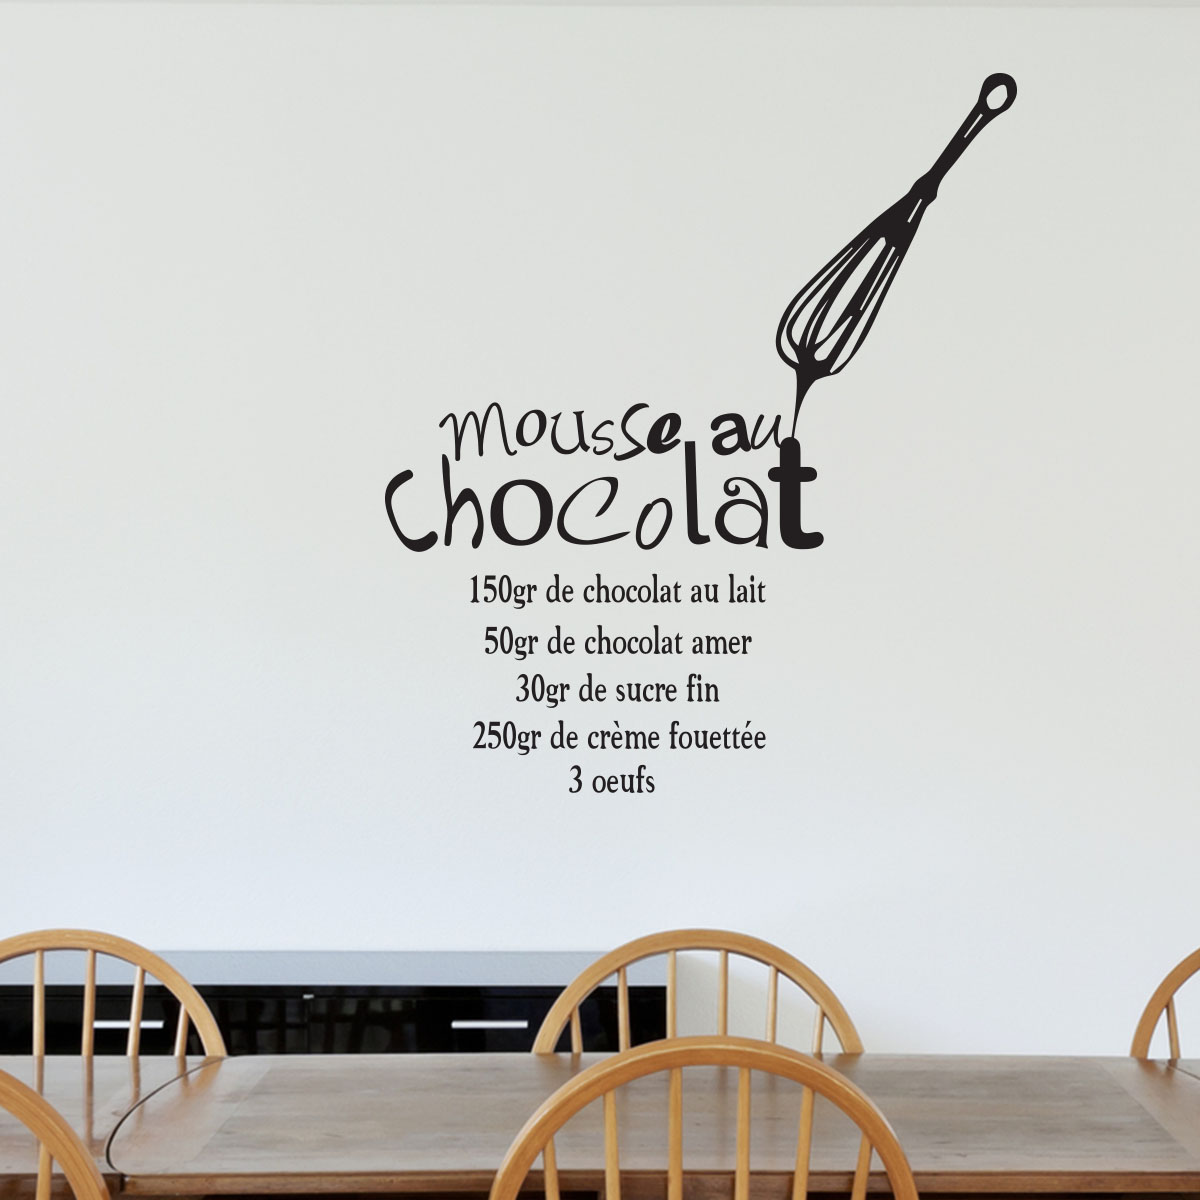 sticker recette mousse au chocolat stickers cuisine ambiance. Black Bedroom Furniture Sets. Home Design Ideas